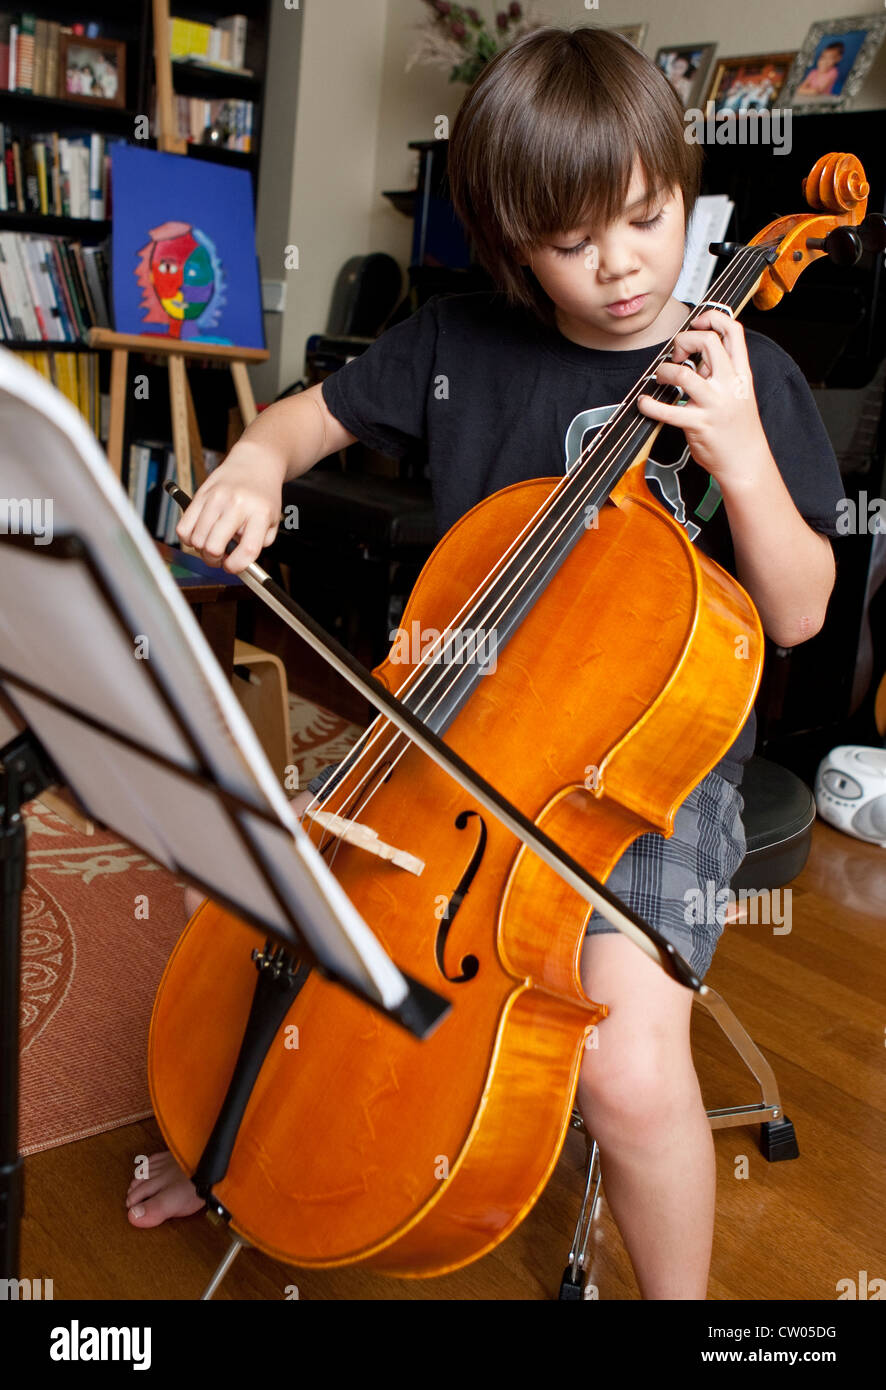 Japanese-American 8 year old boy practices music lessons